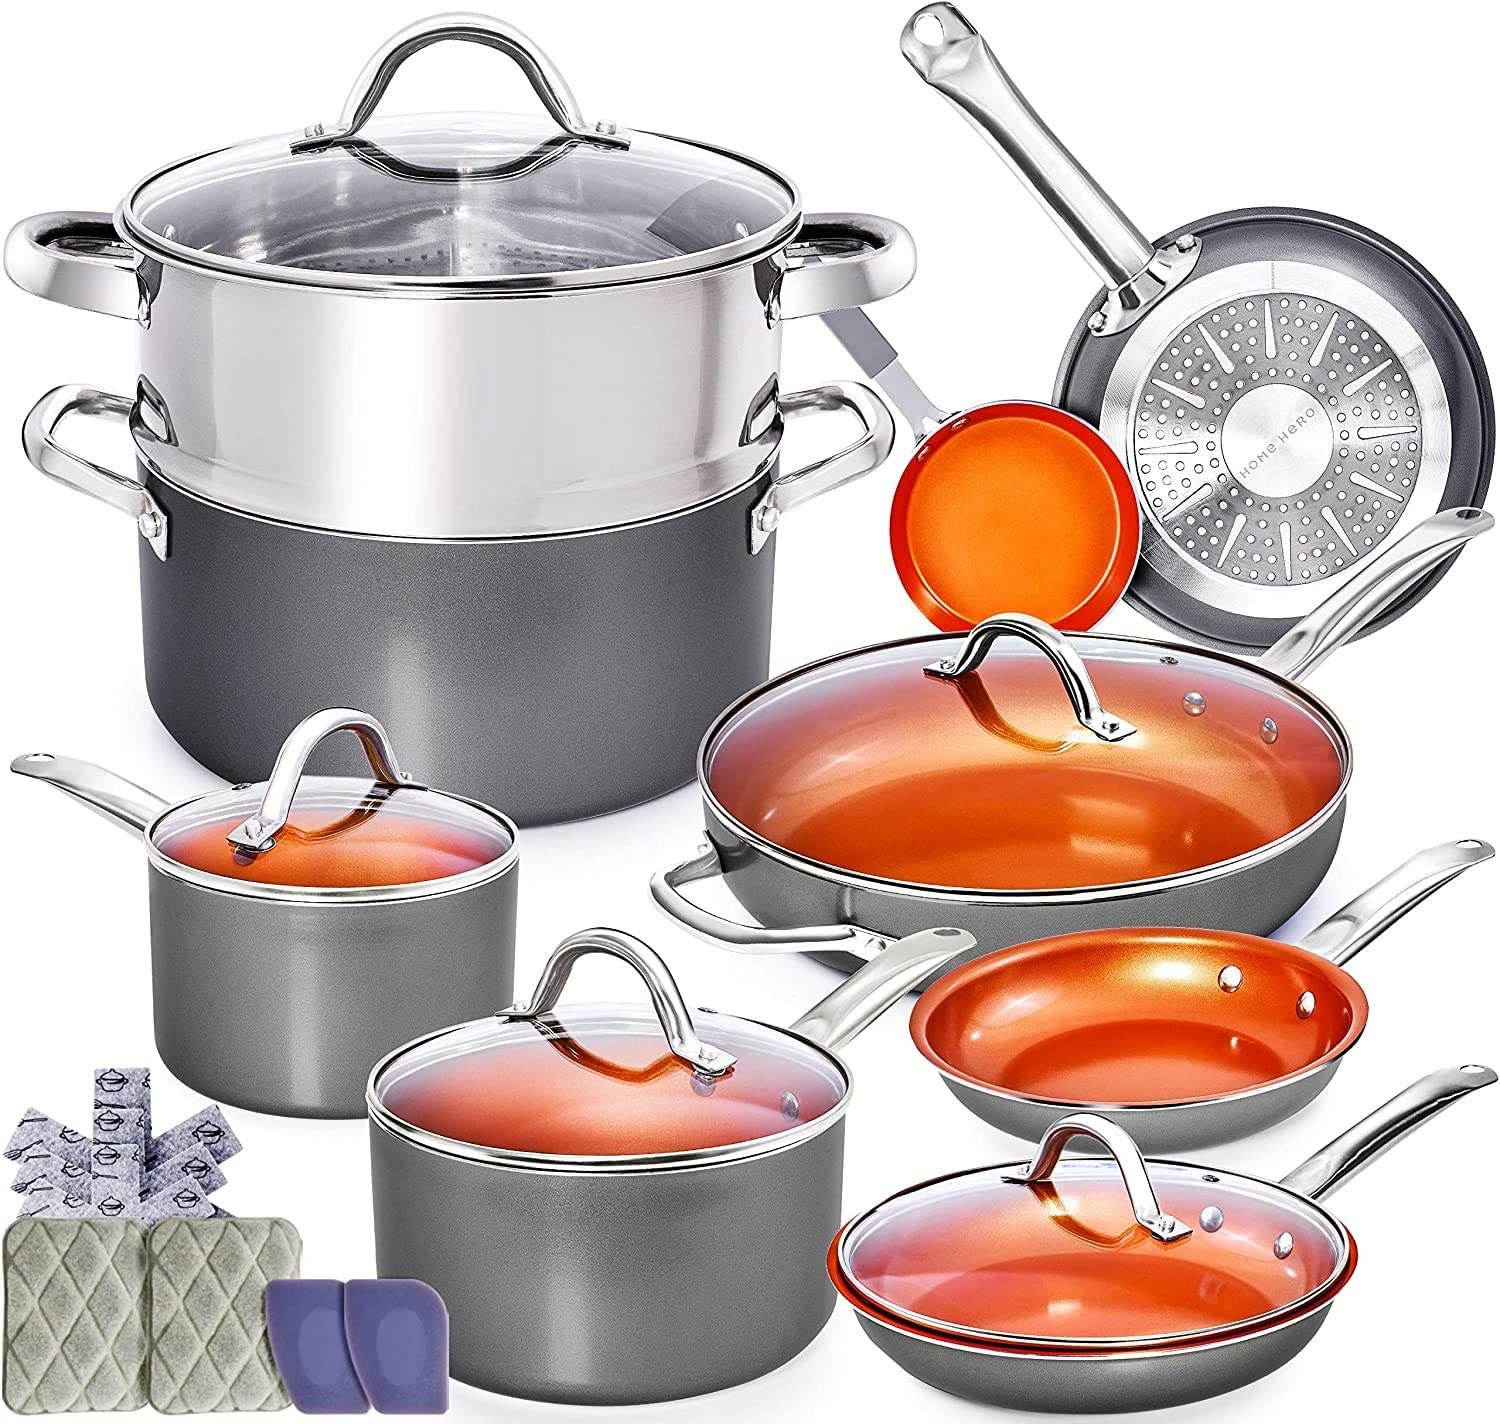 The Top 10 Best Induction Cookware Review